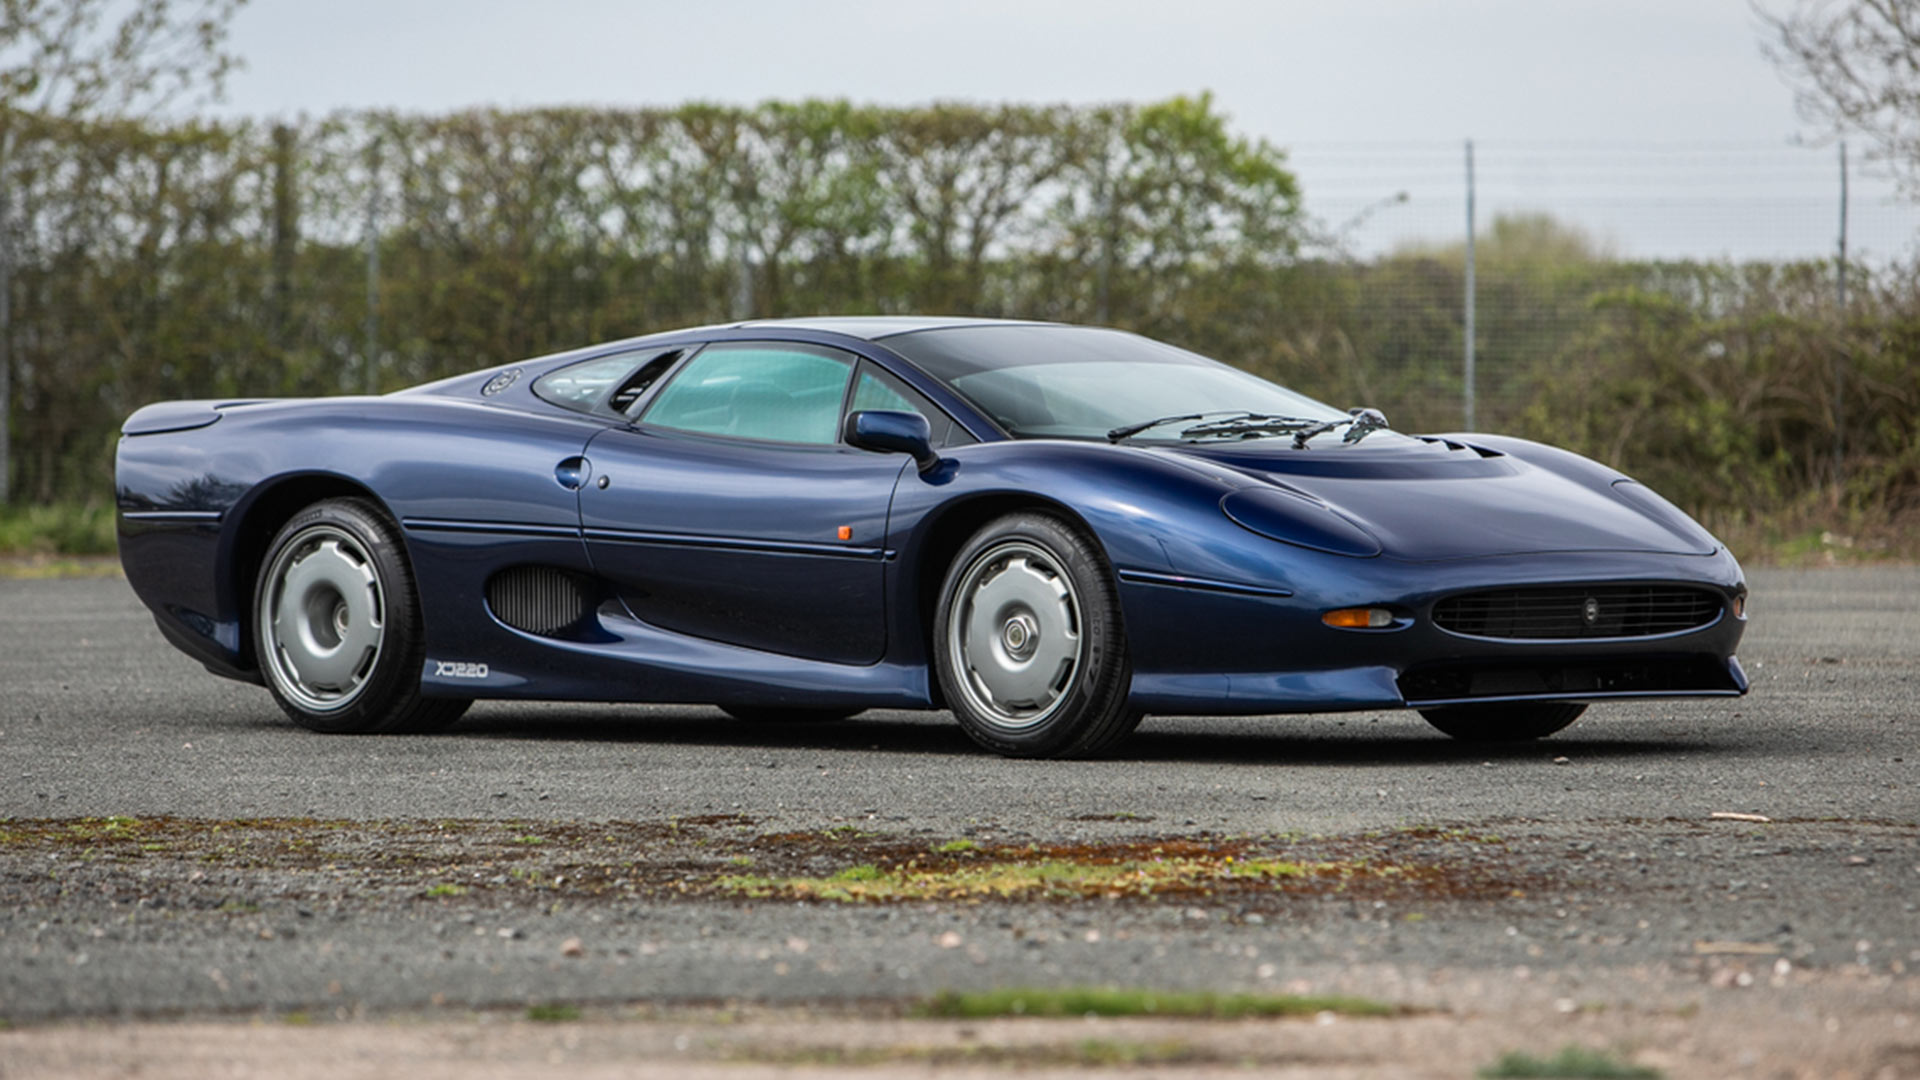 Jaguar XJ220s and super-rare custom XJS star at May auction